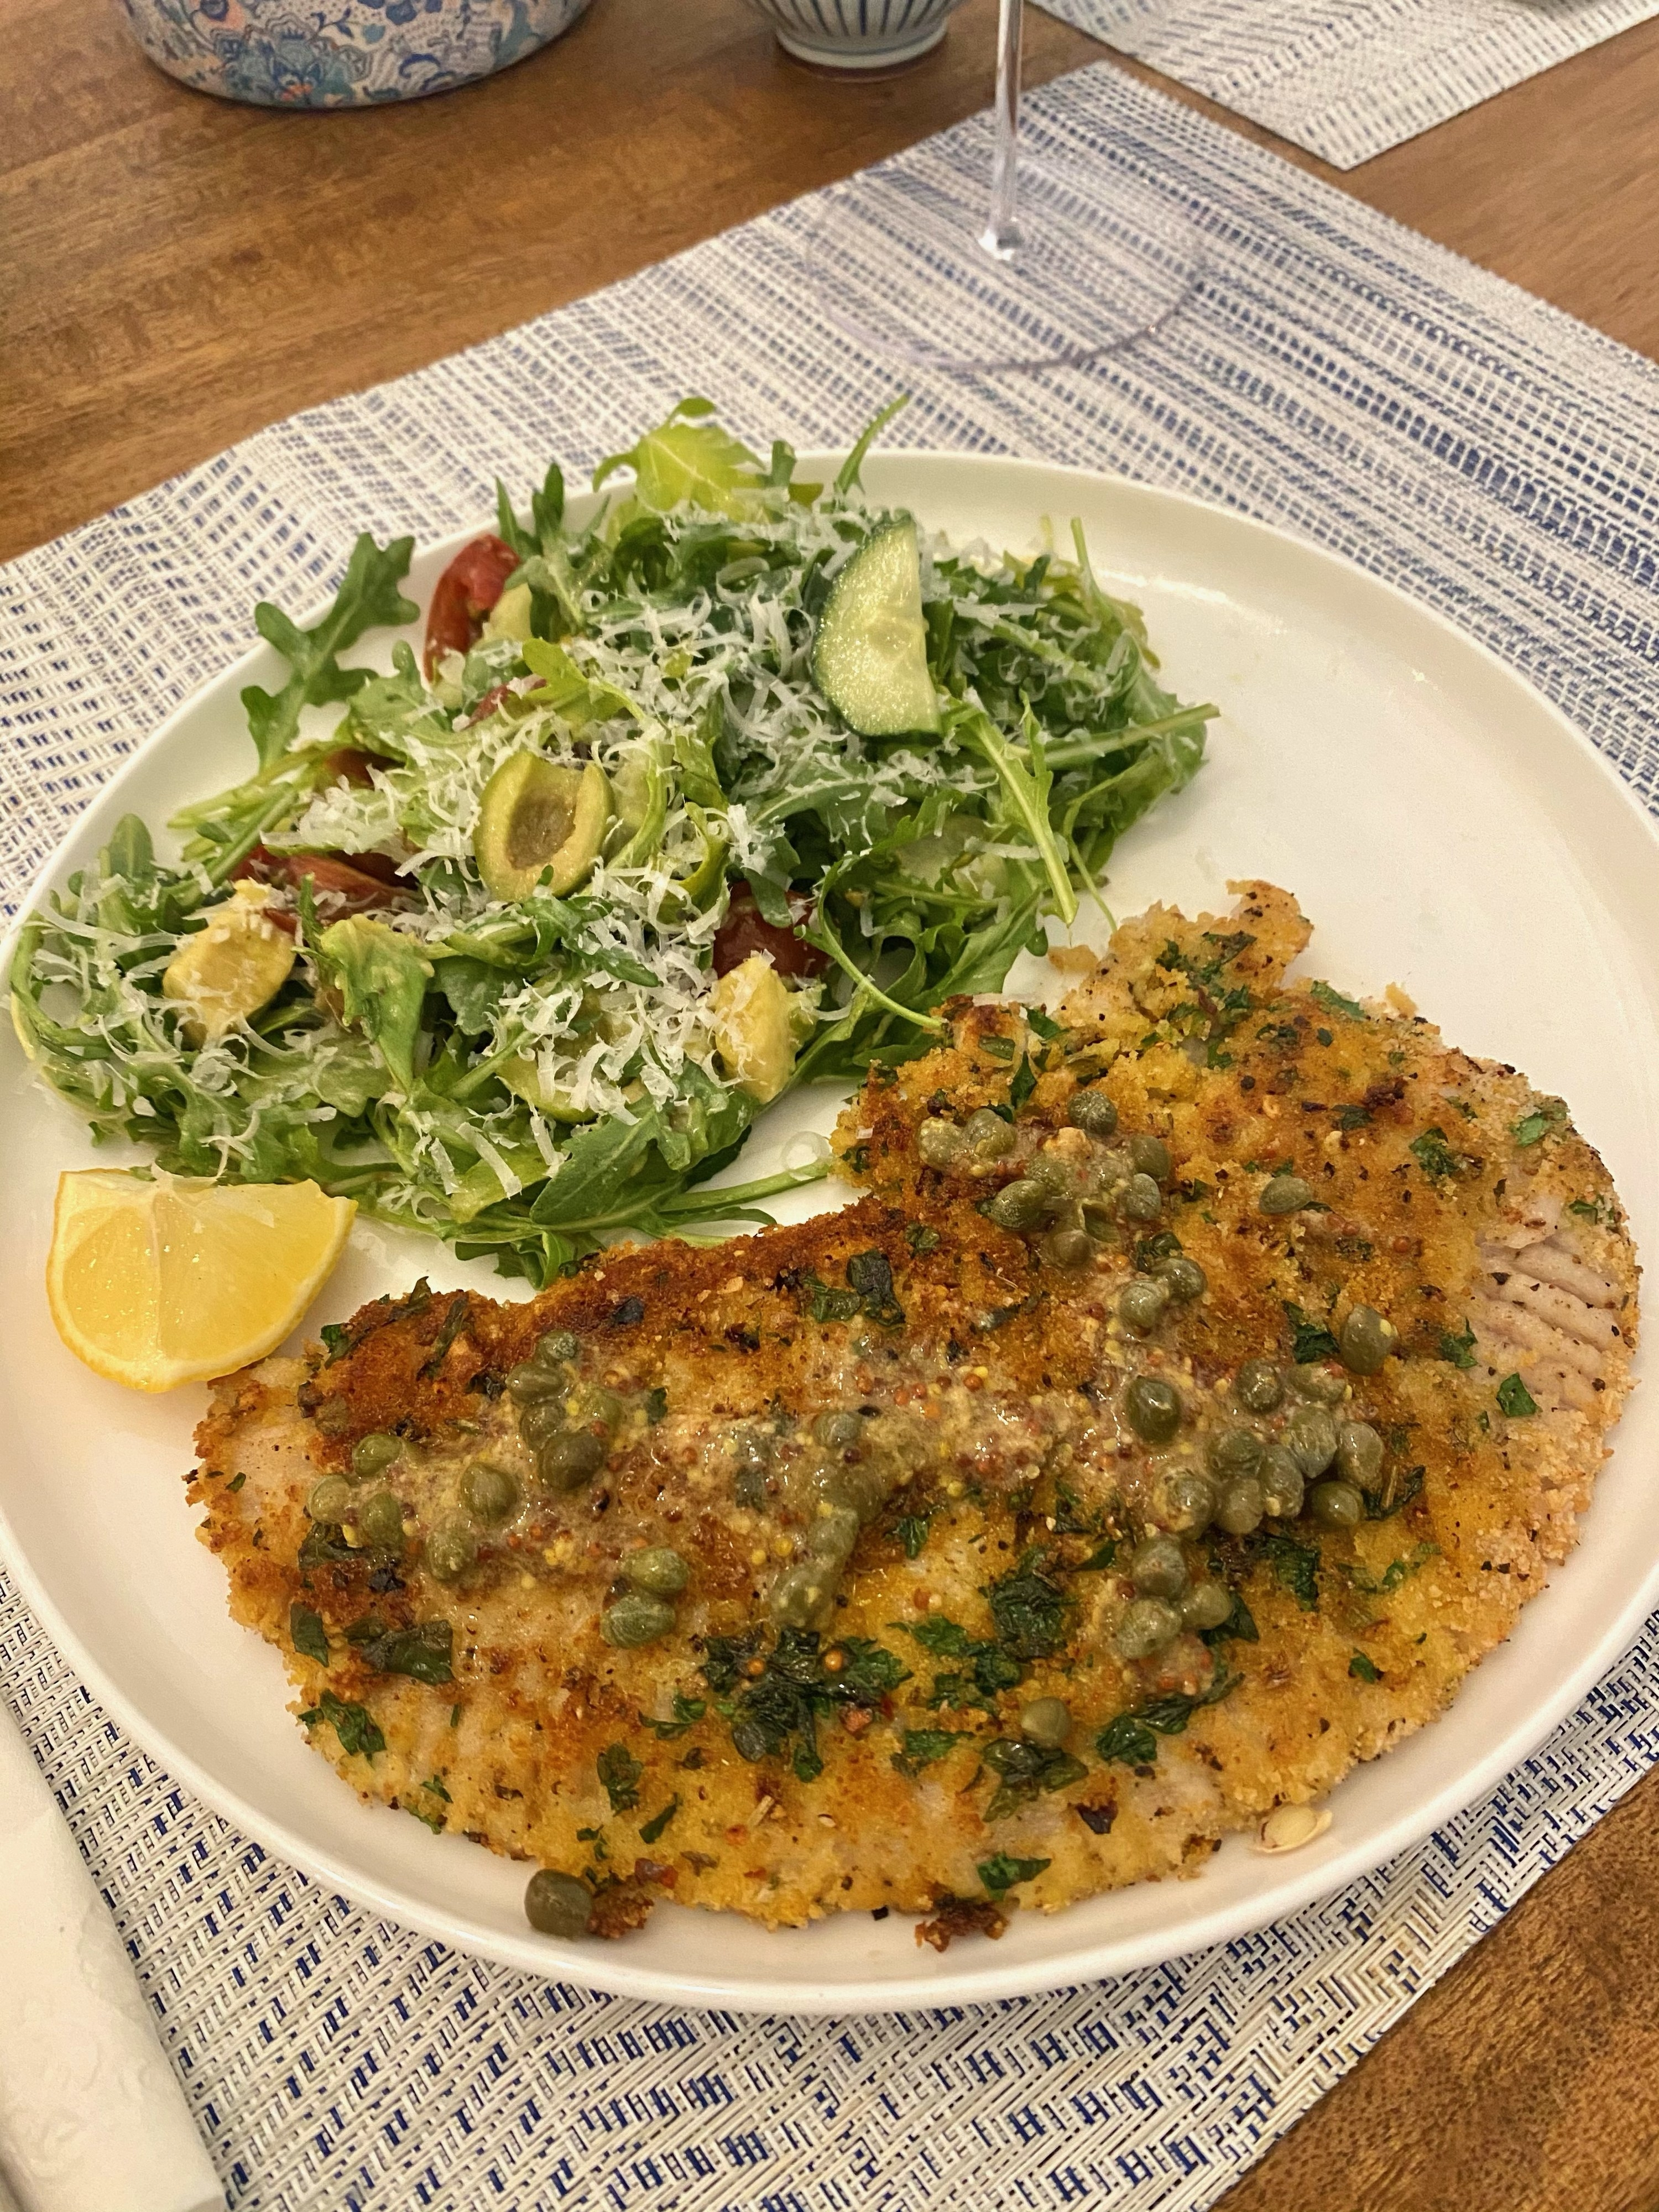 Skate wing Milanese topped with caper butter and a side salad.